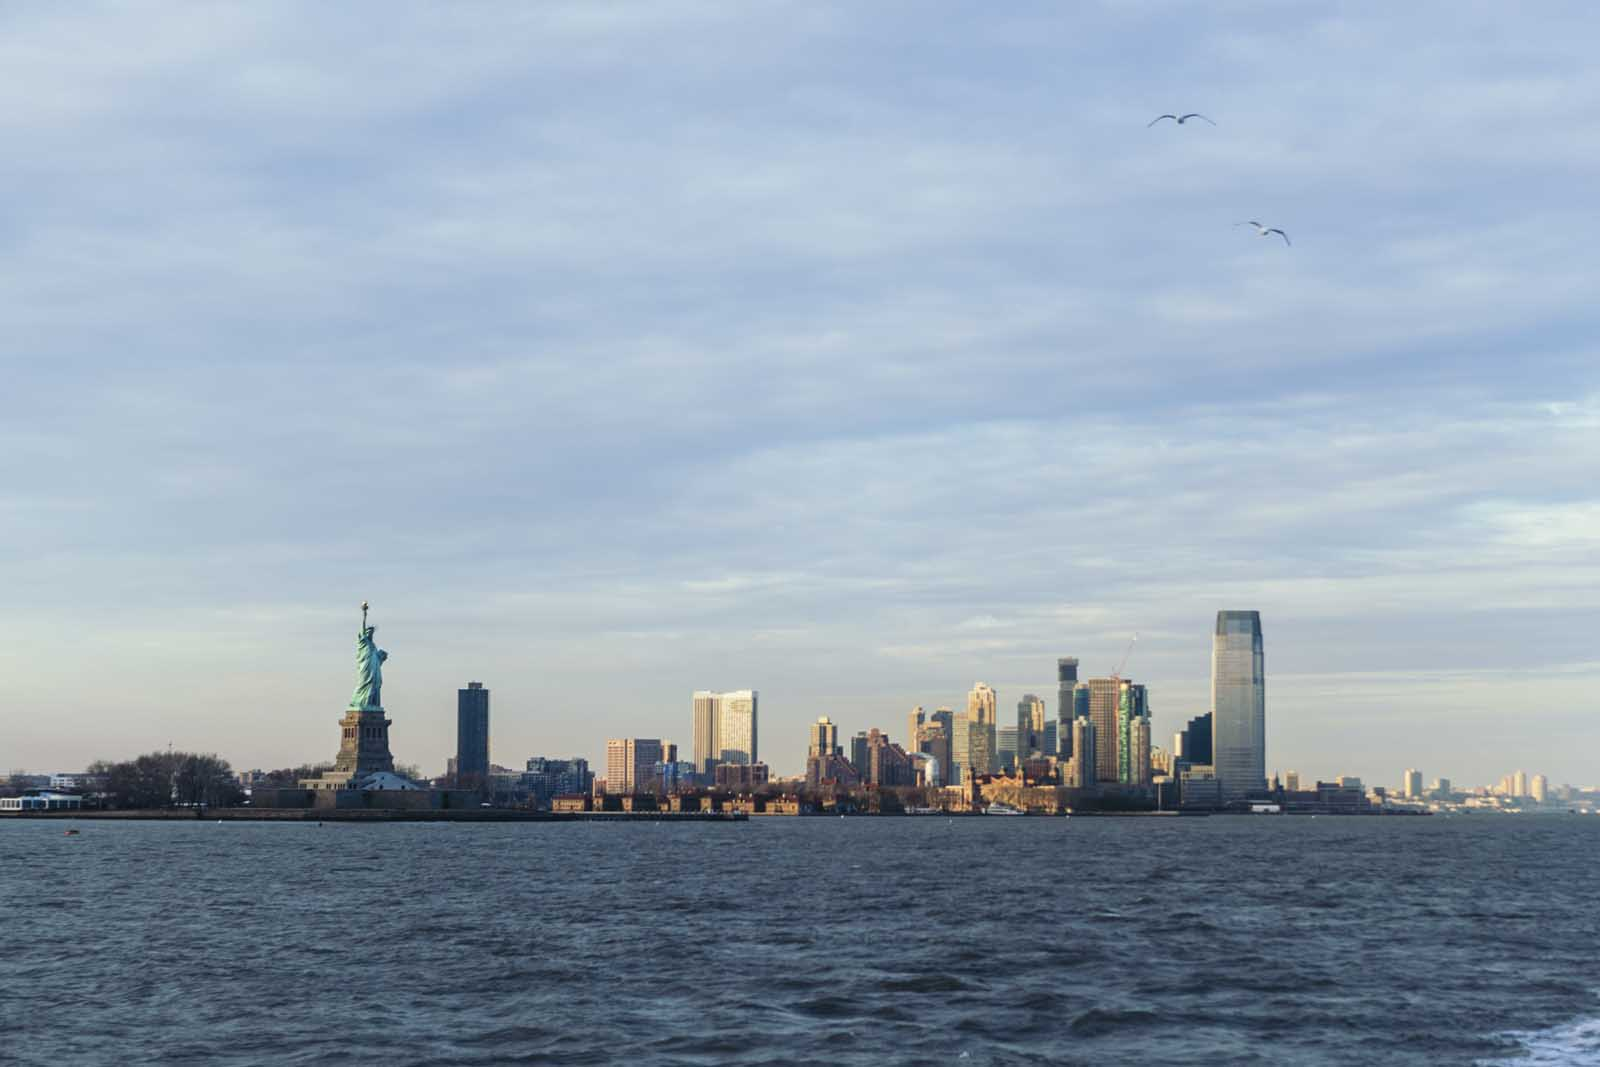 View of Manhatten and Statue of Liberty from Ferry